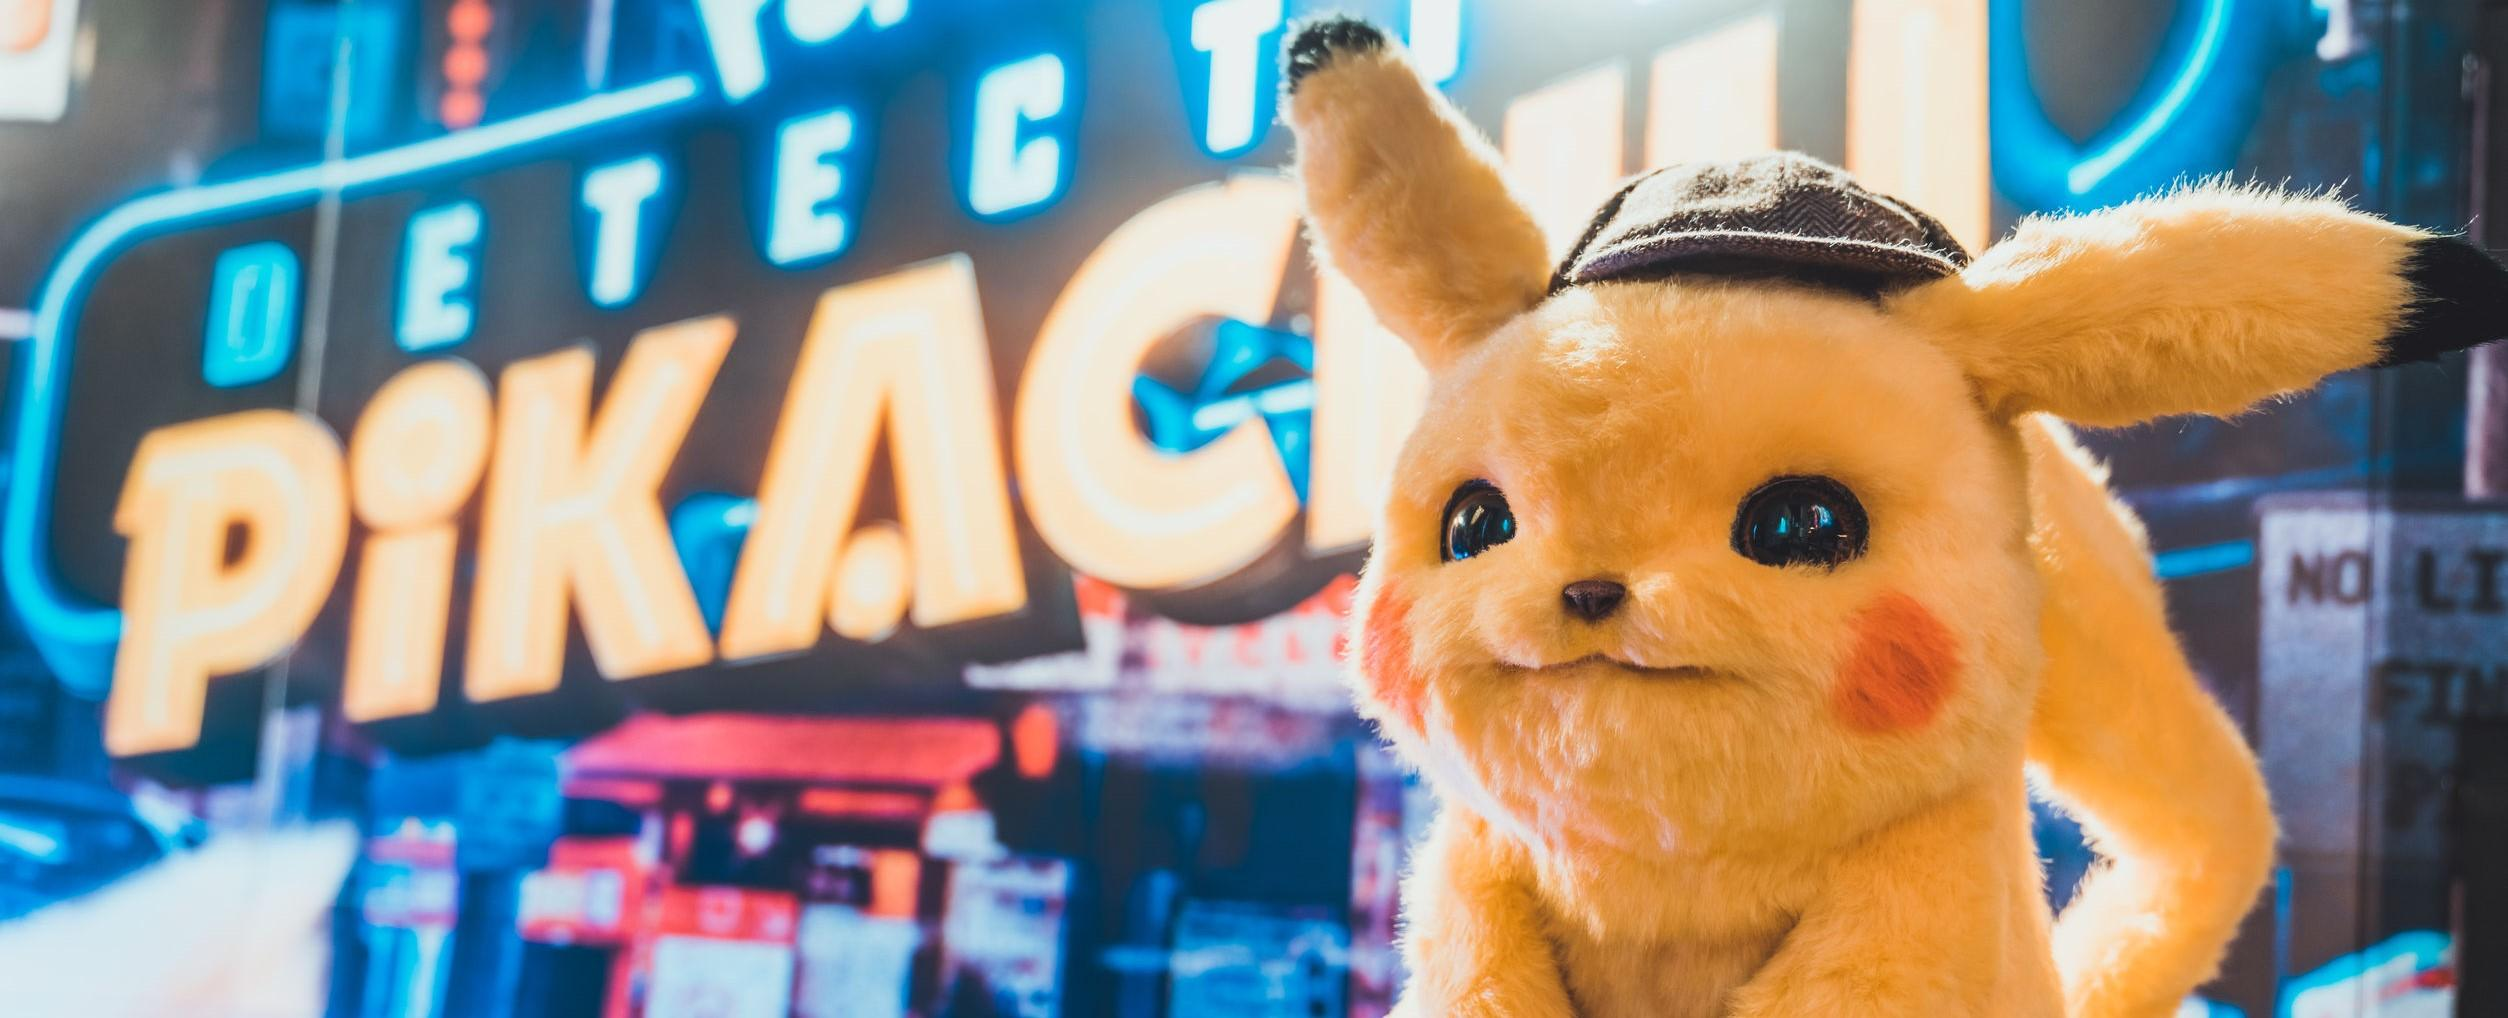 a picture of Detective Pikachu